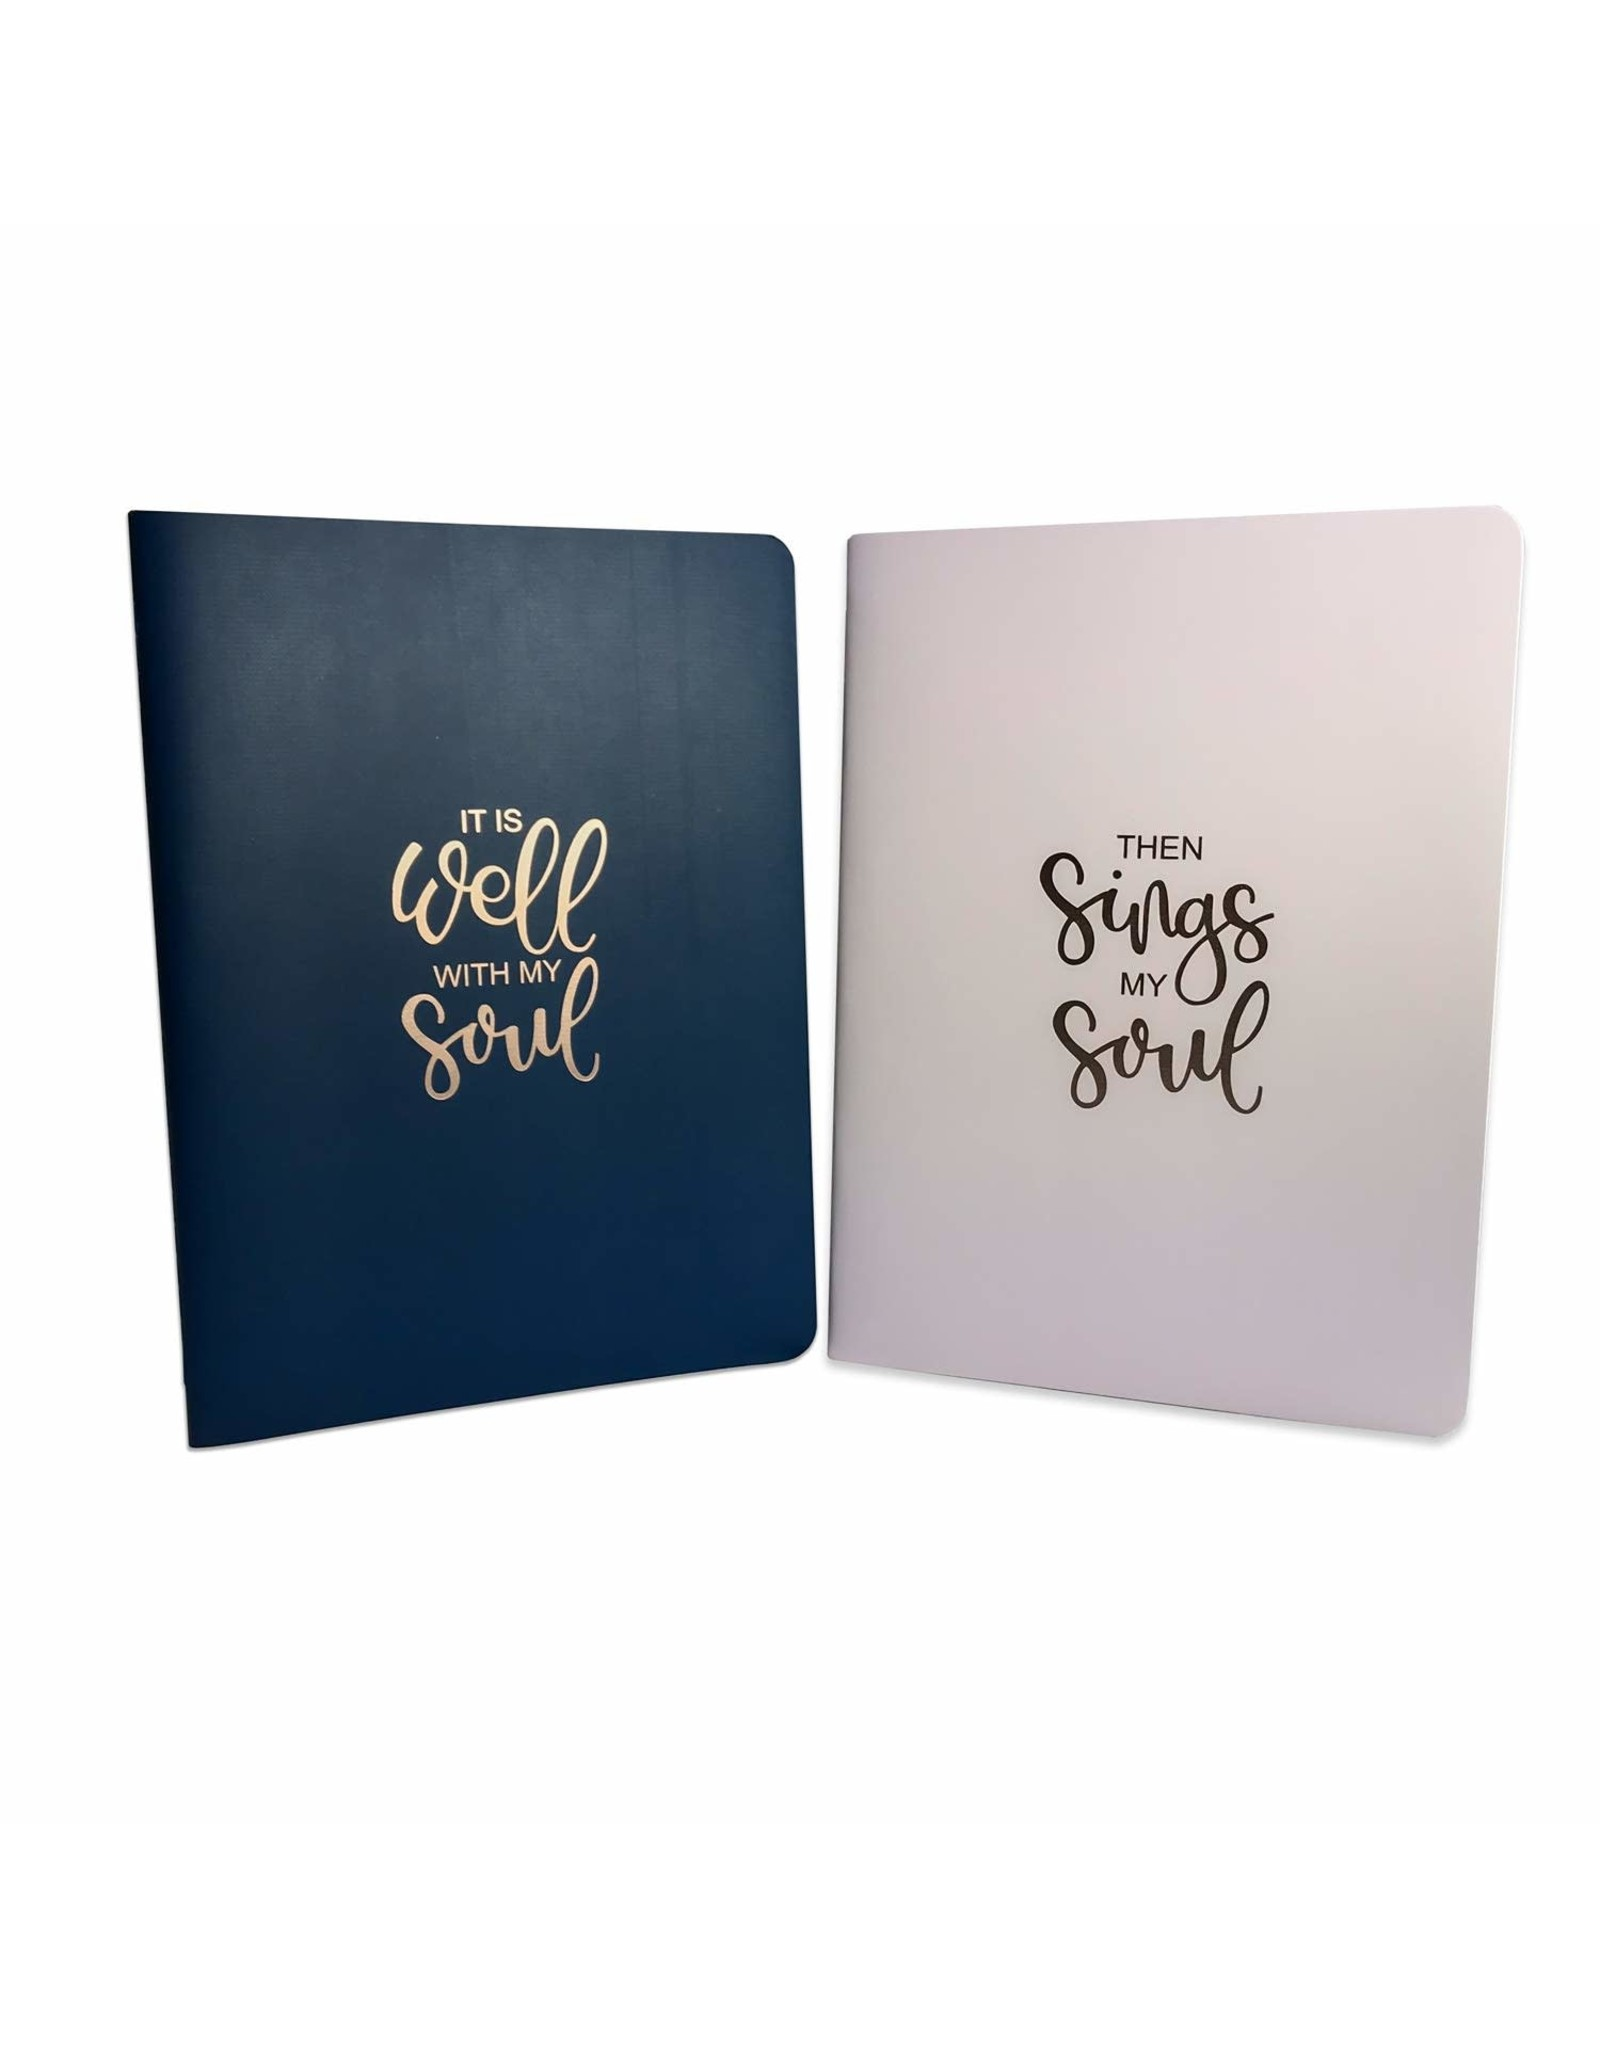 316 Publishing Hymns For The Soul - Journal Two Pack